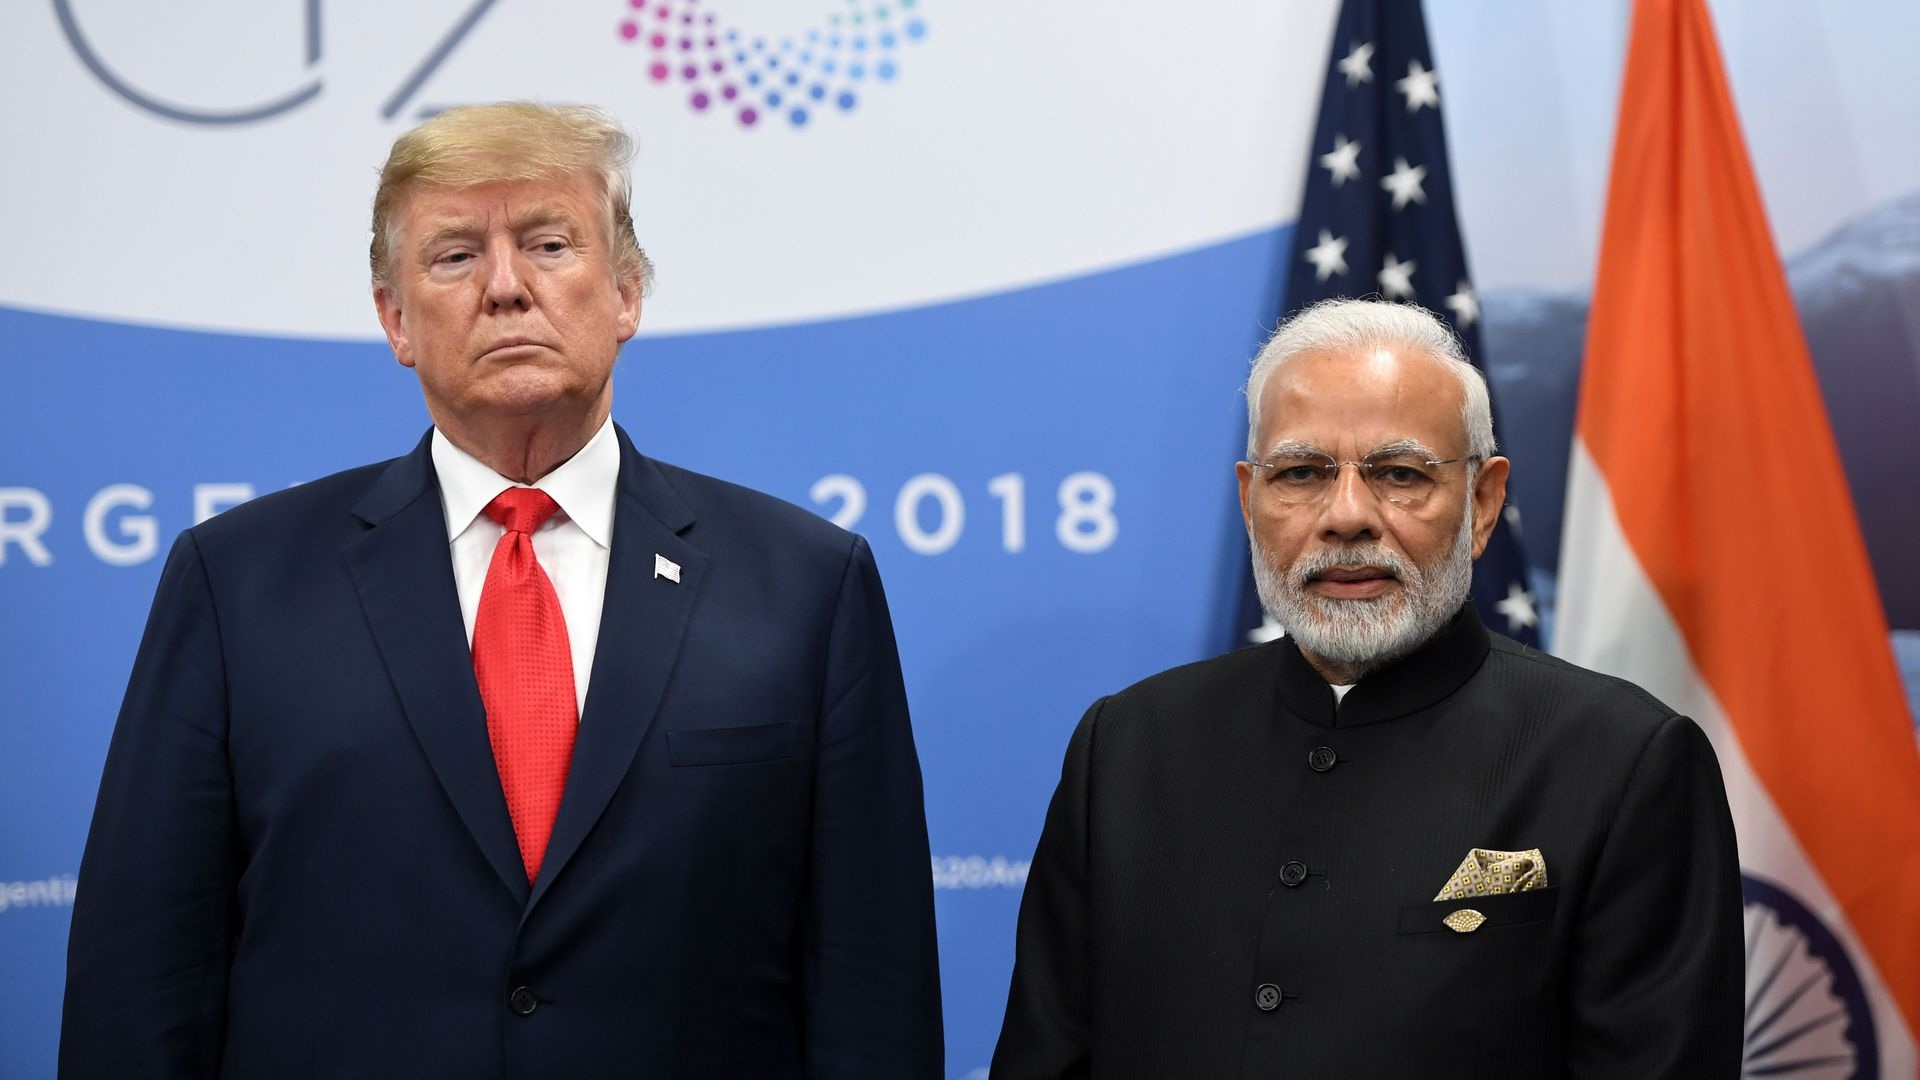 Trump trade war: India announces tariffs on U.S. products